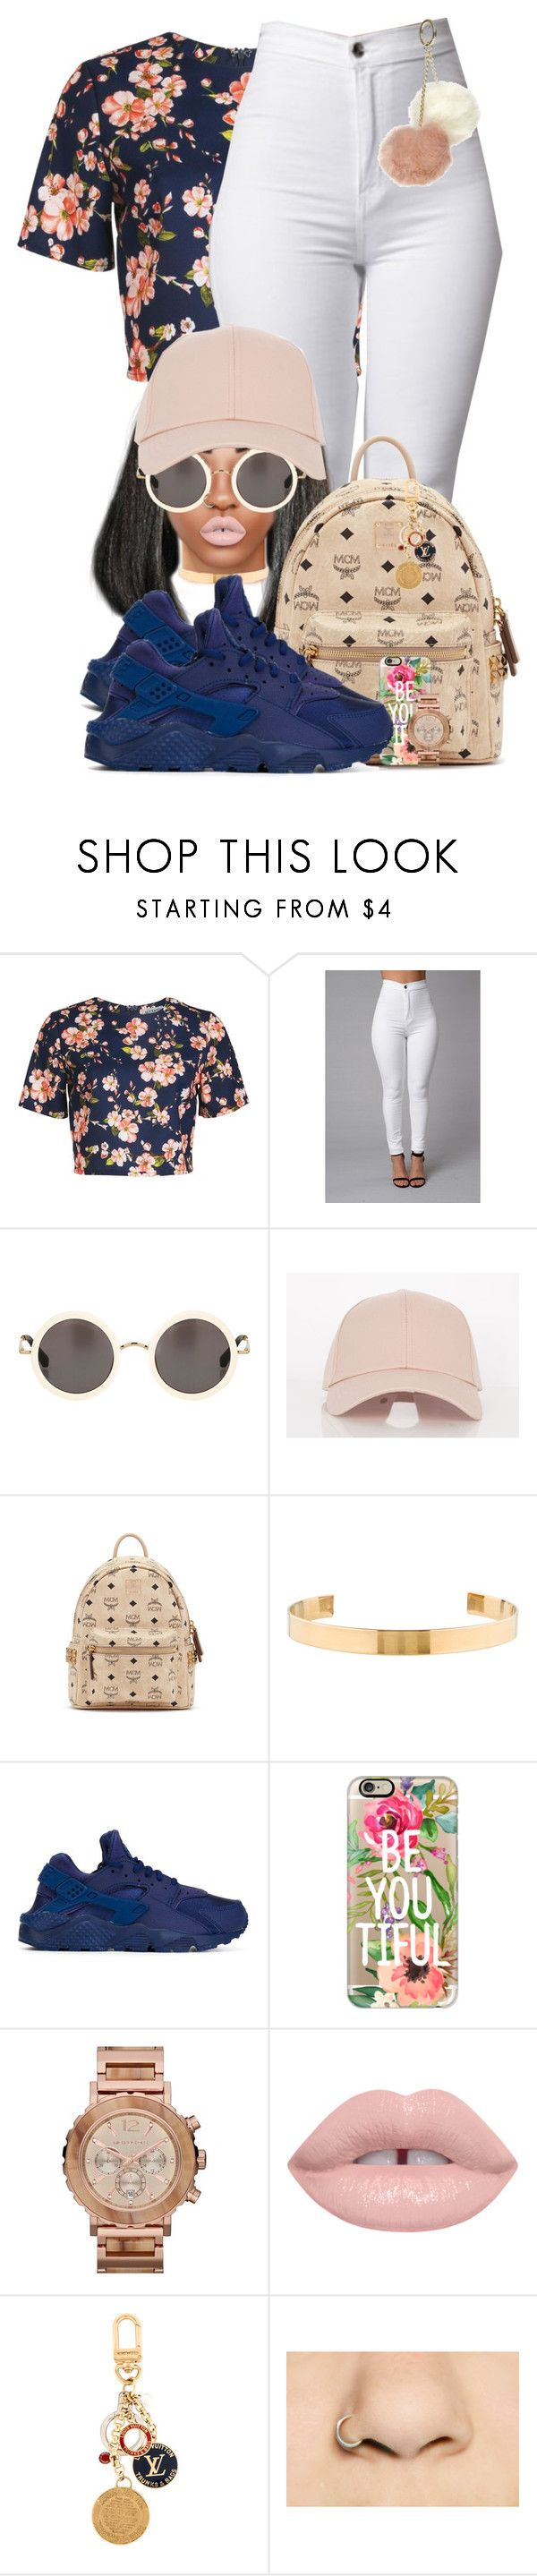 Rambo by chiamaka-ikaraoha on Polyvore featuring Alice & You, NIKE, MCM, Michael Kors, Jennifer Fisher, Dorothy Perkins, Casetify and Louis Vuitton